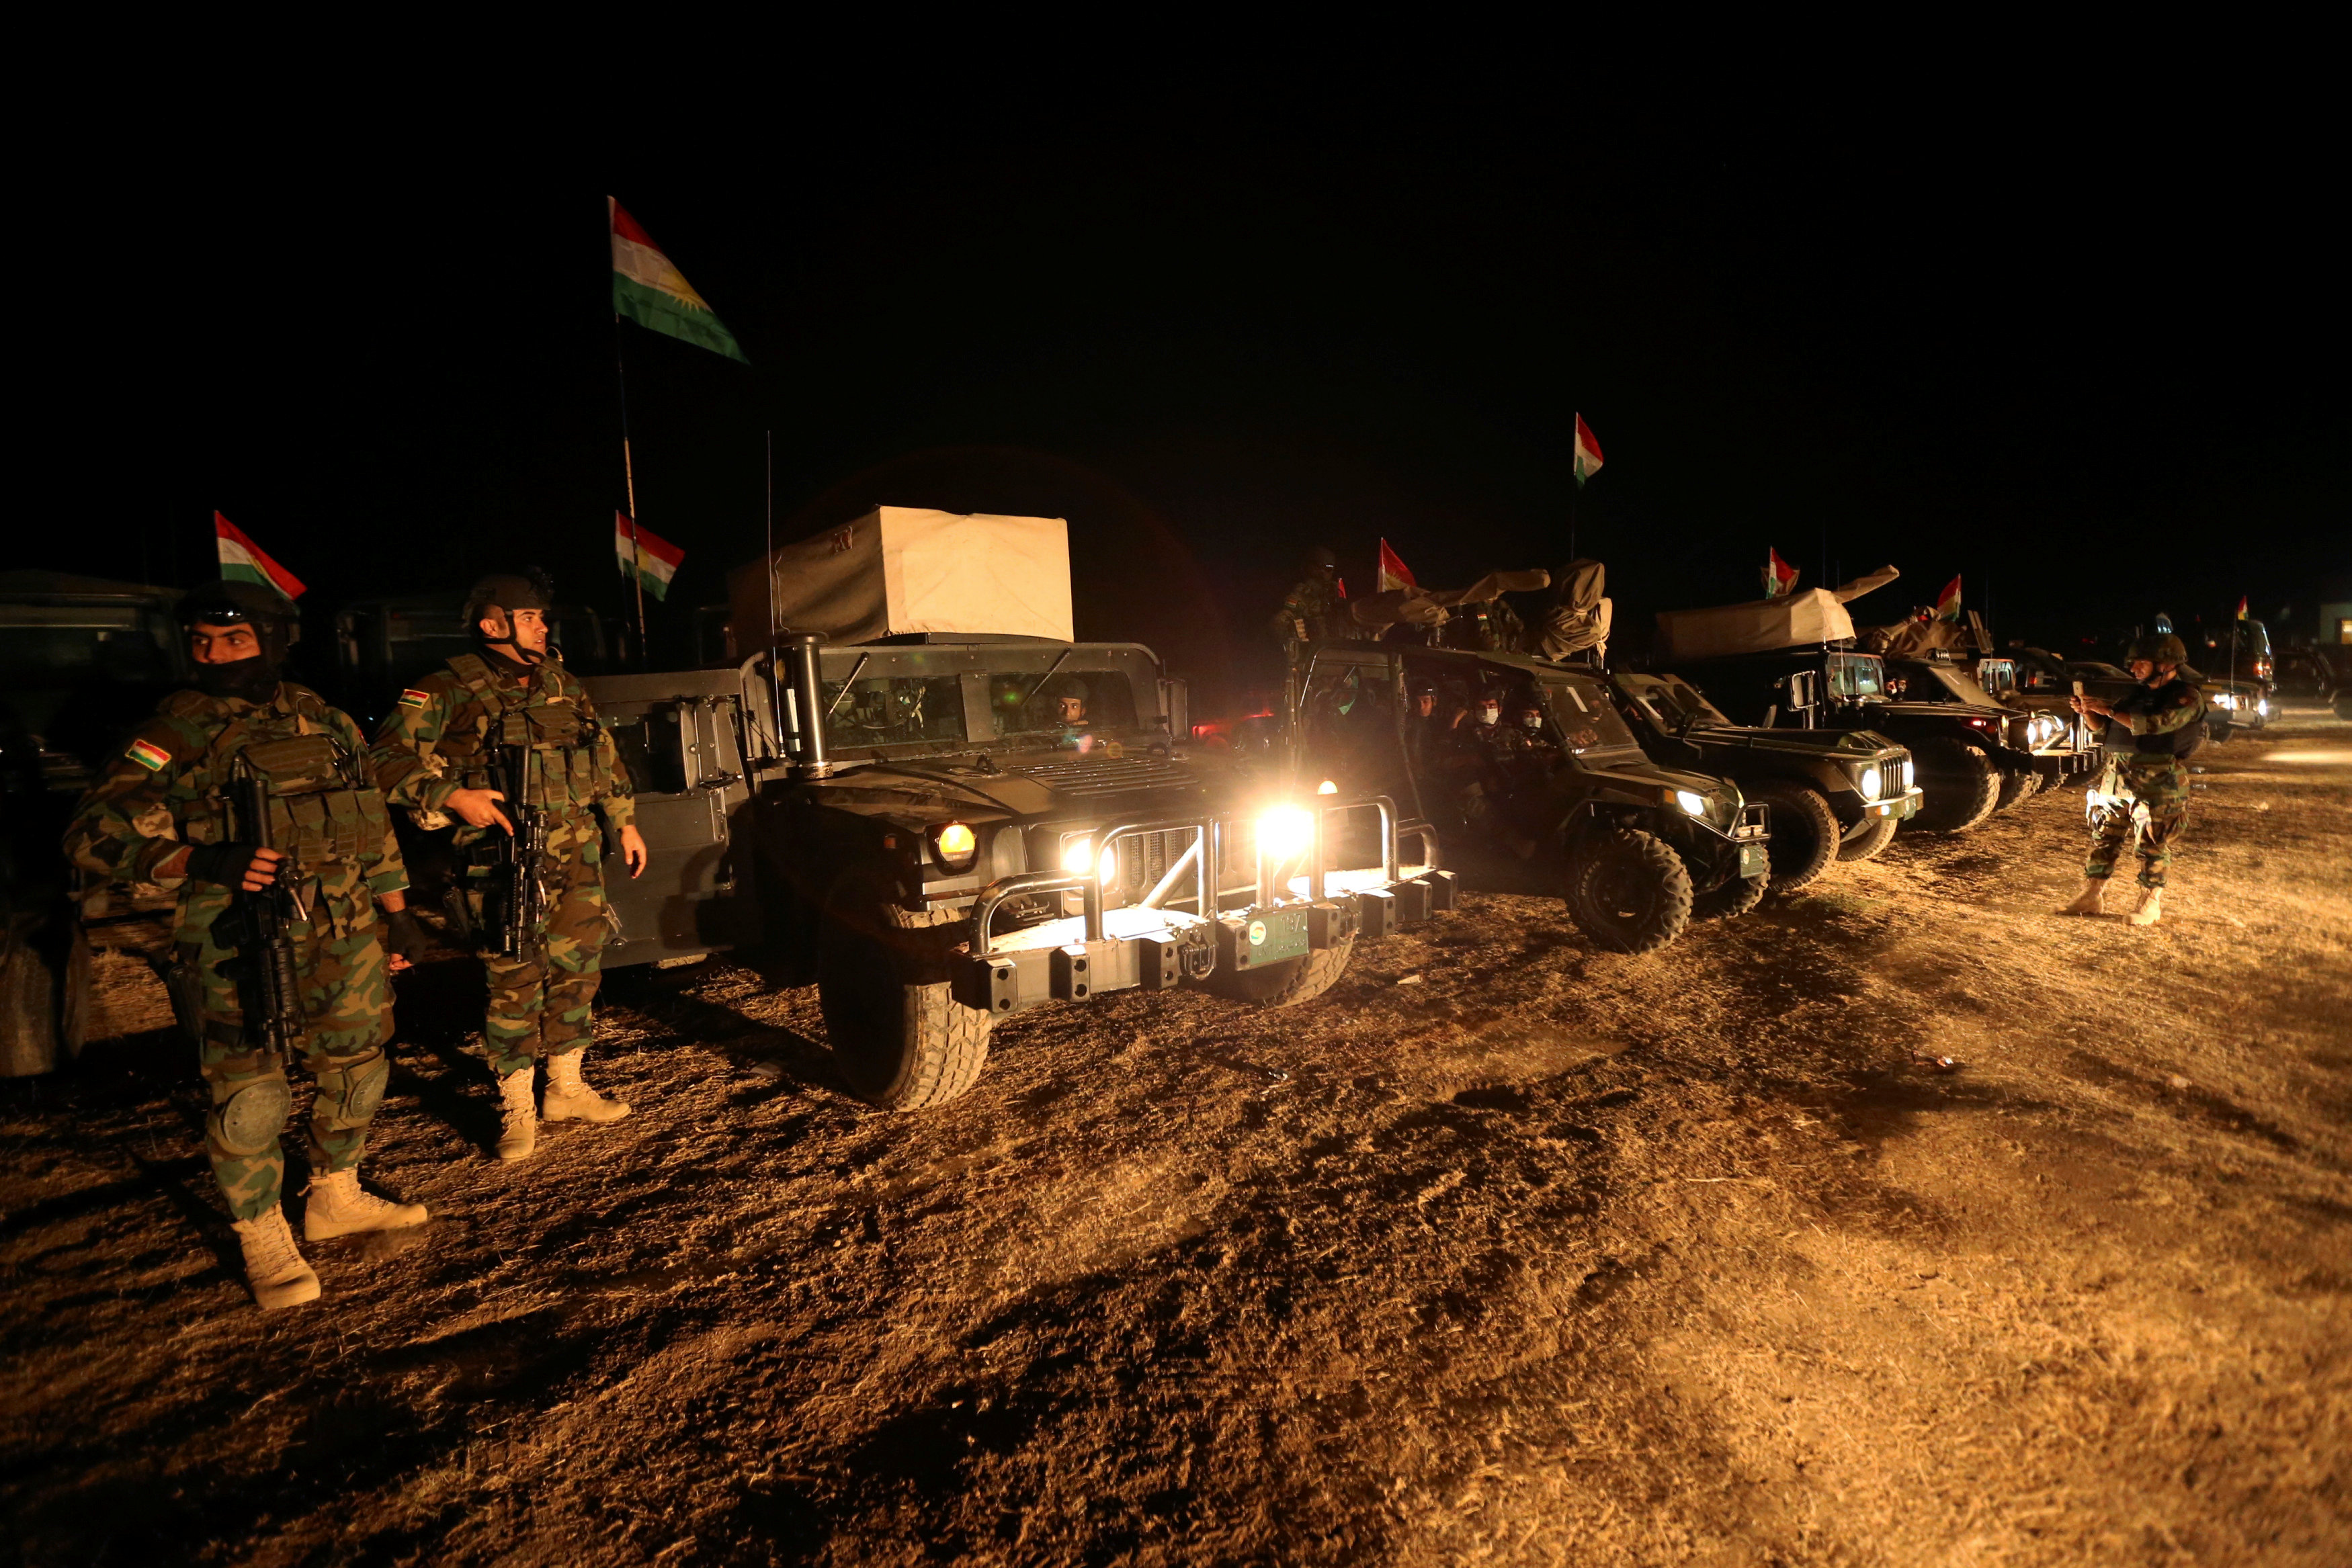 Peshmerga forces gather north of Mosul, during an operation to attack Islamic State militants in Mosul, Iraq, October 19, 2016. REUTERS/Ari Jalal